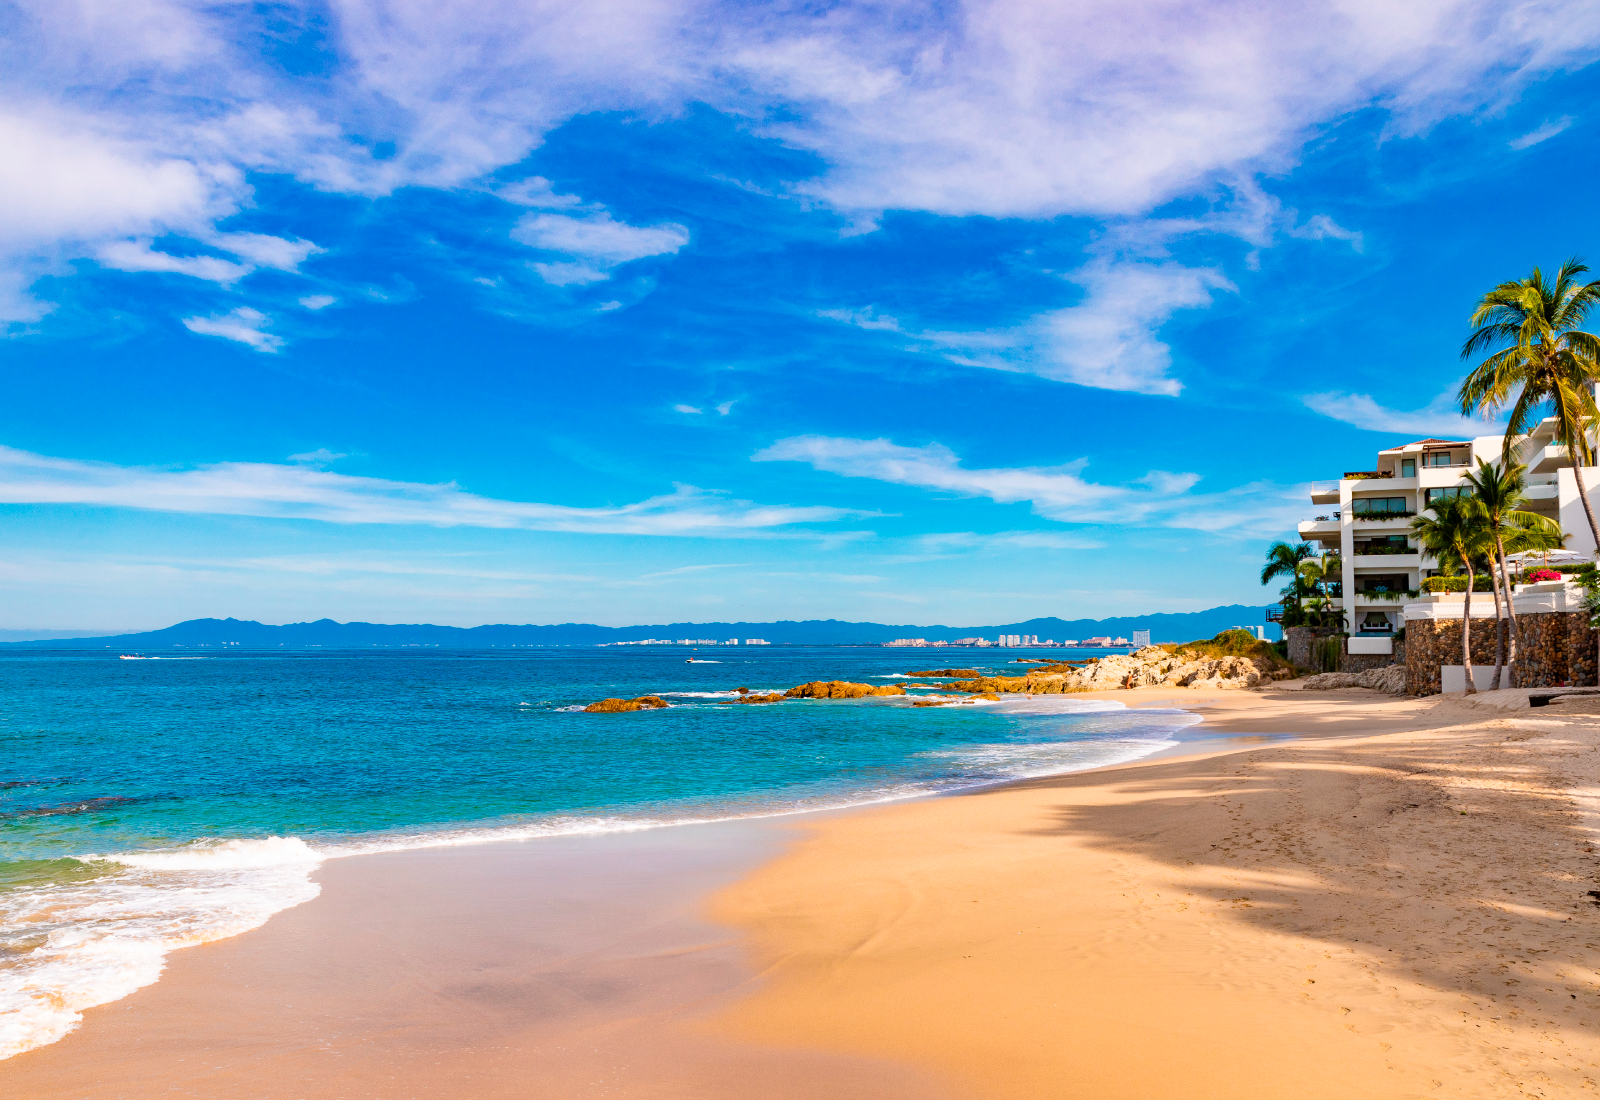 The World's Cleanest Beaches: Puerto Vallarta & Riviera Nayarit